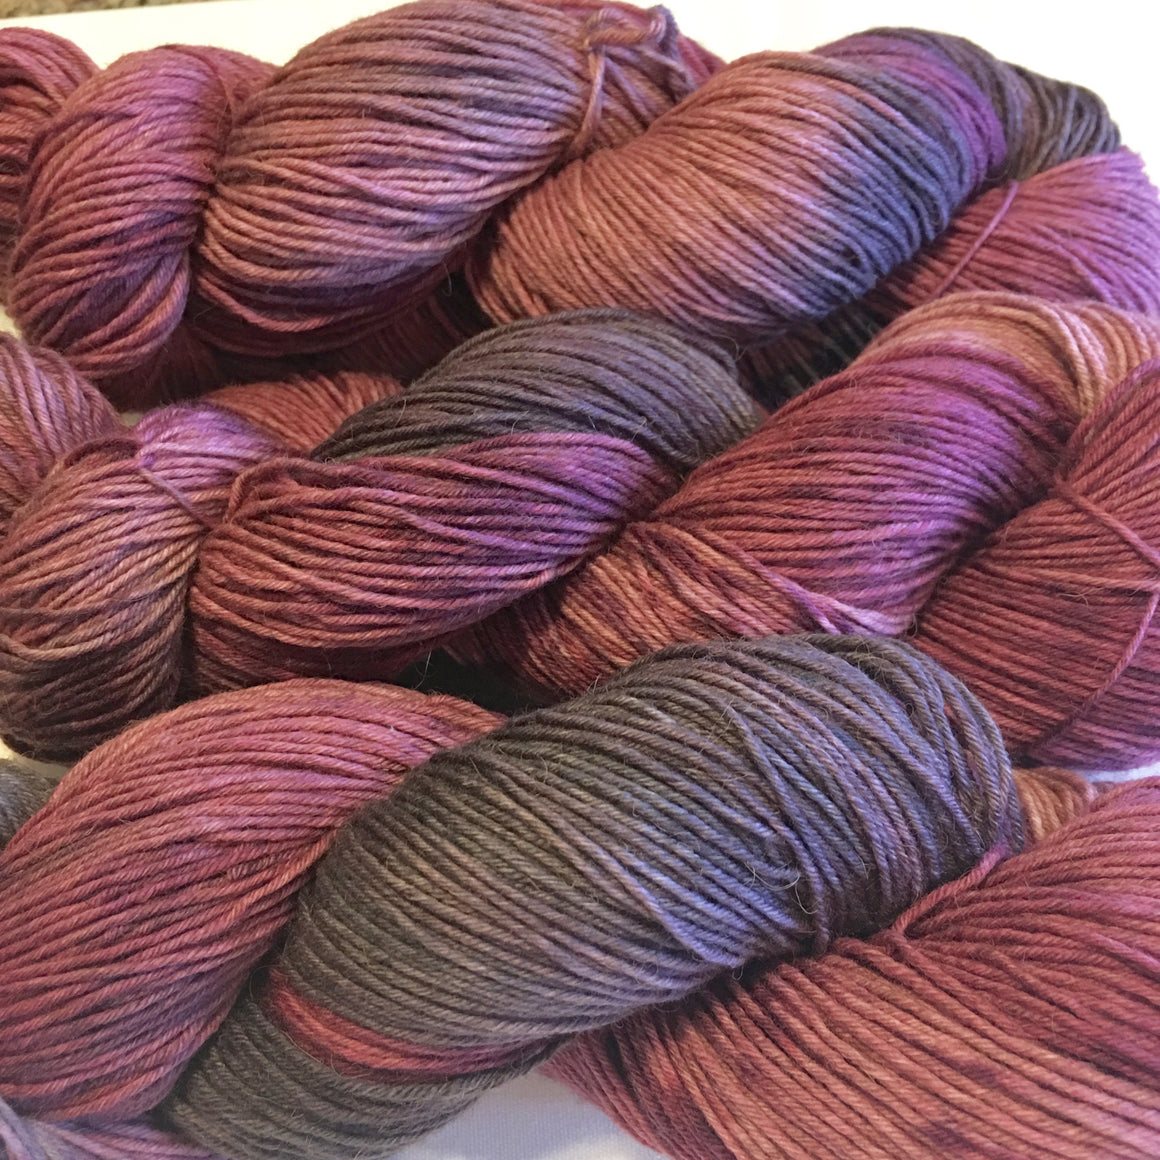 """Briar Rose"" is pink and gray tones in a fingering weight bison yarn"